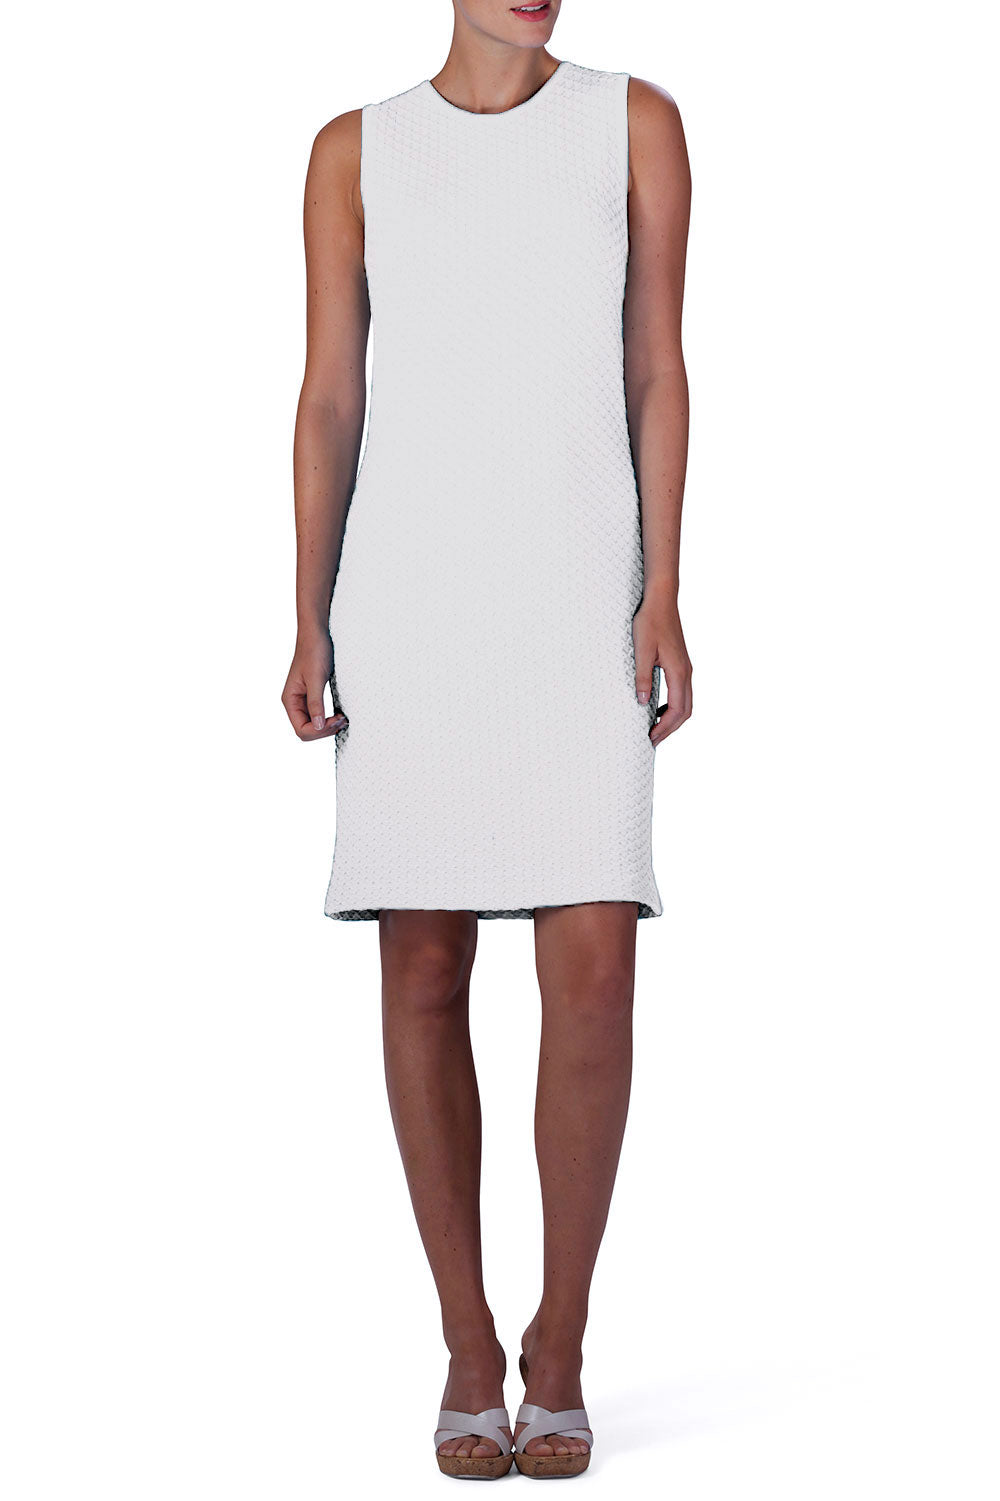 FAB Knitted Dress (White)